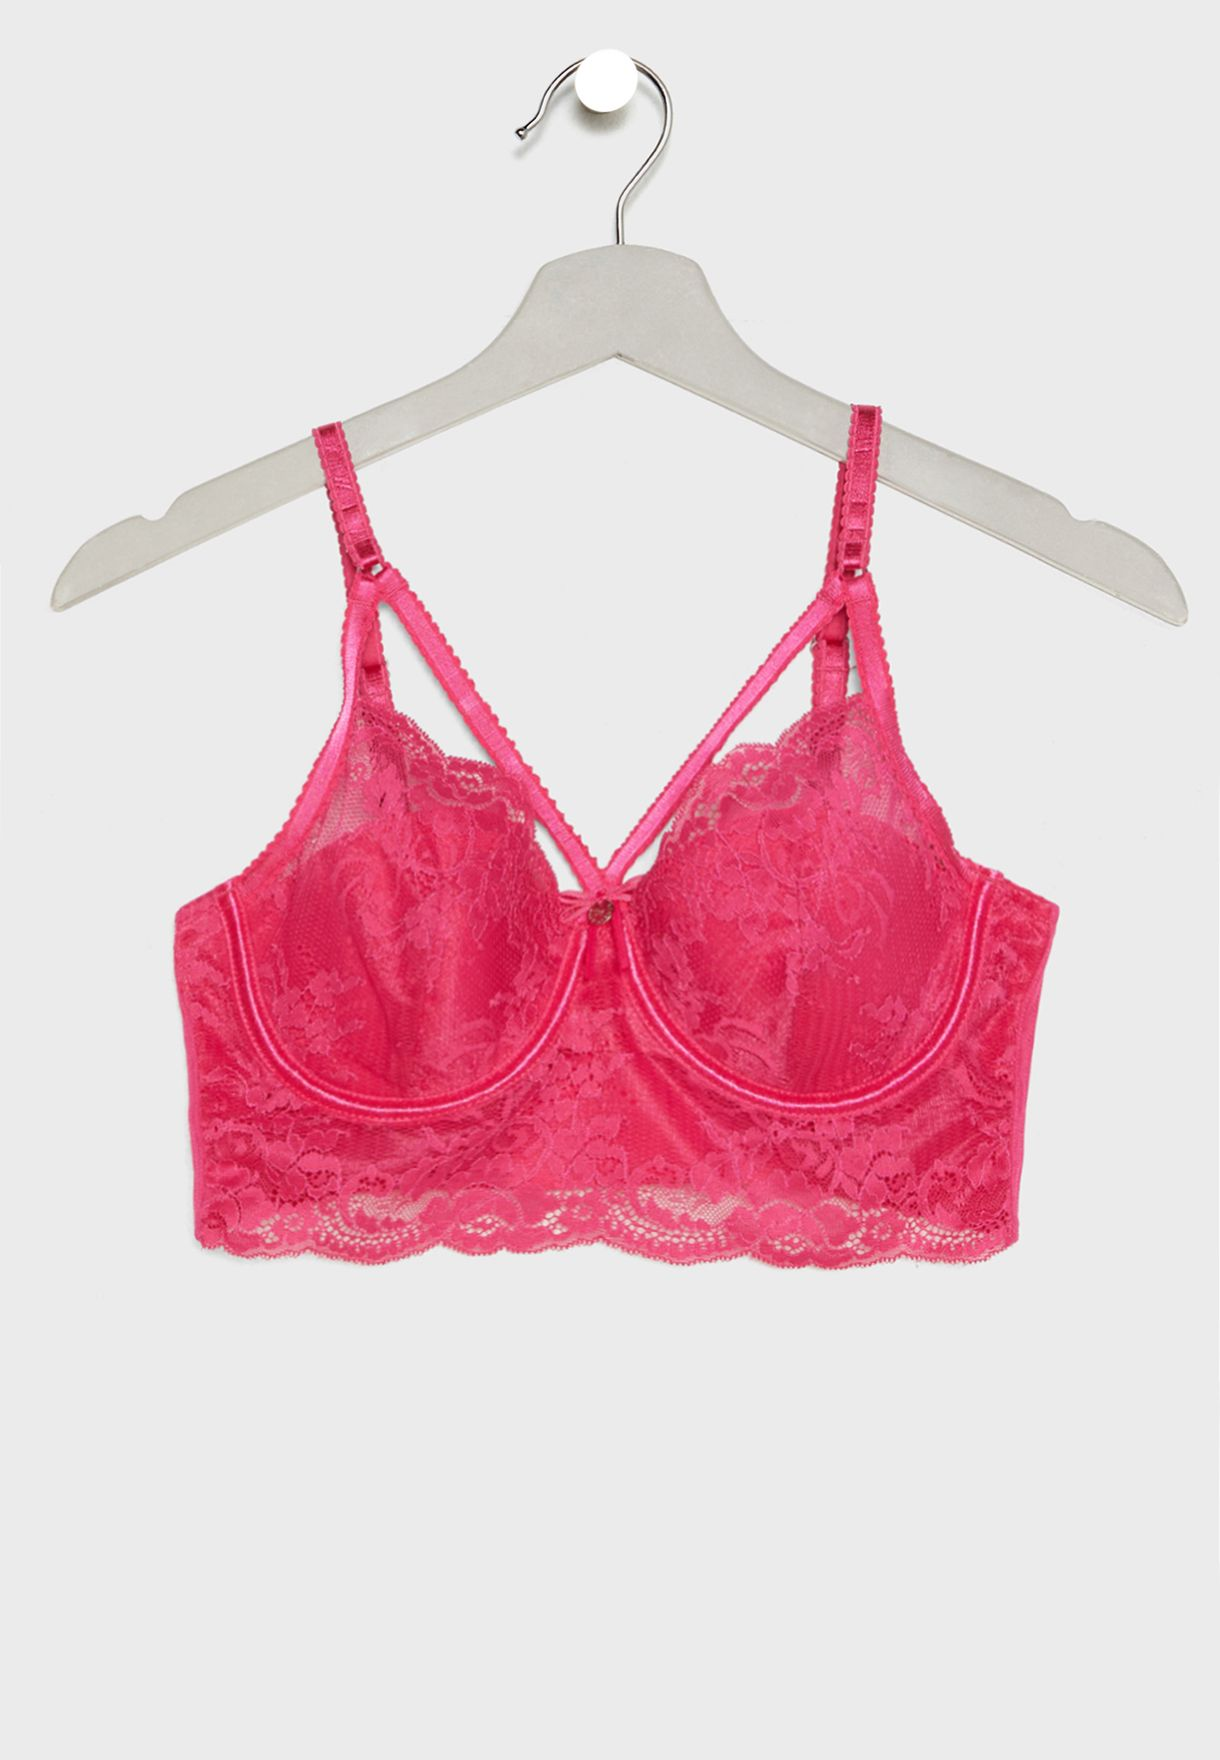 1c7f3e3f35e9 Shop Boux Avenue pink Odette Strappy Lace Bra 101752 for Women in ...